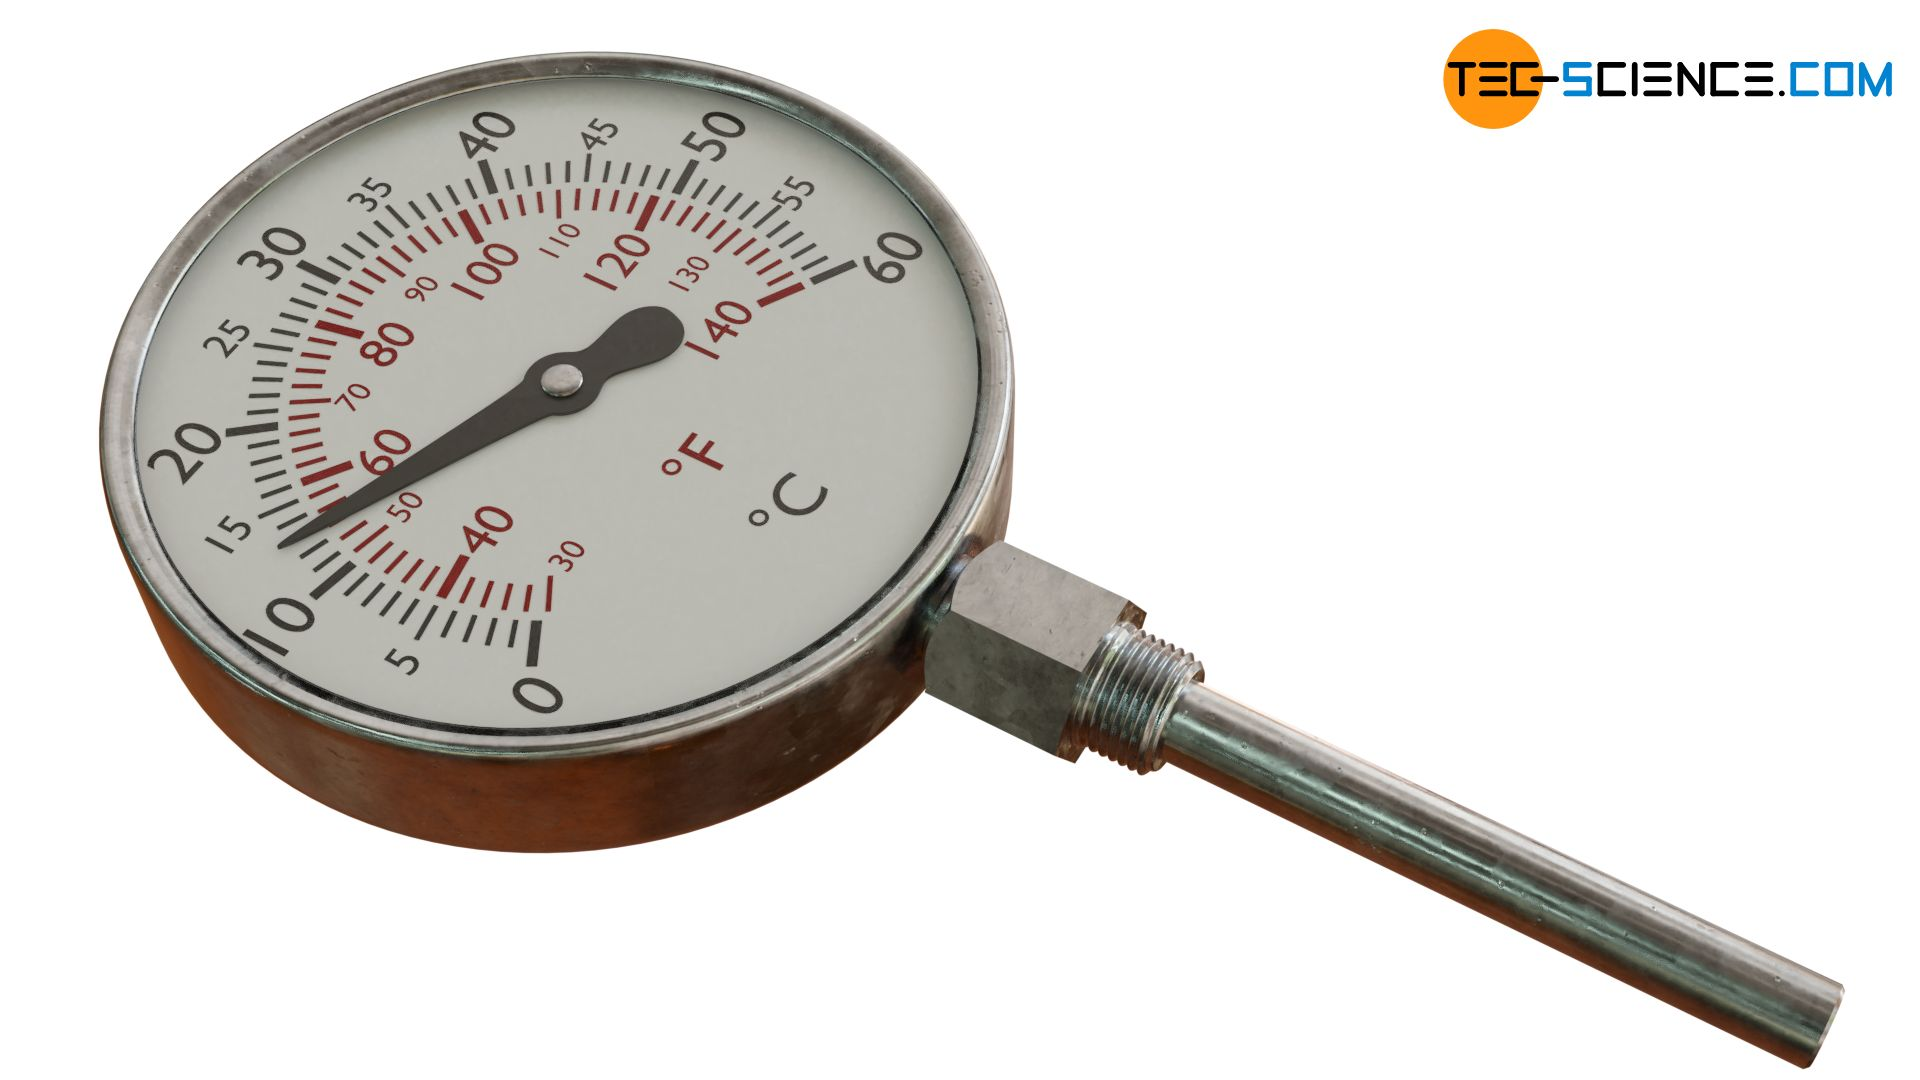 Liquid filled thermometer (liquid-in-metal thermometer)